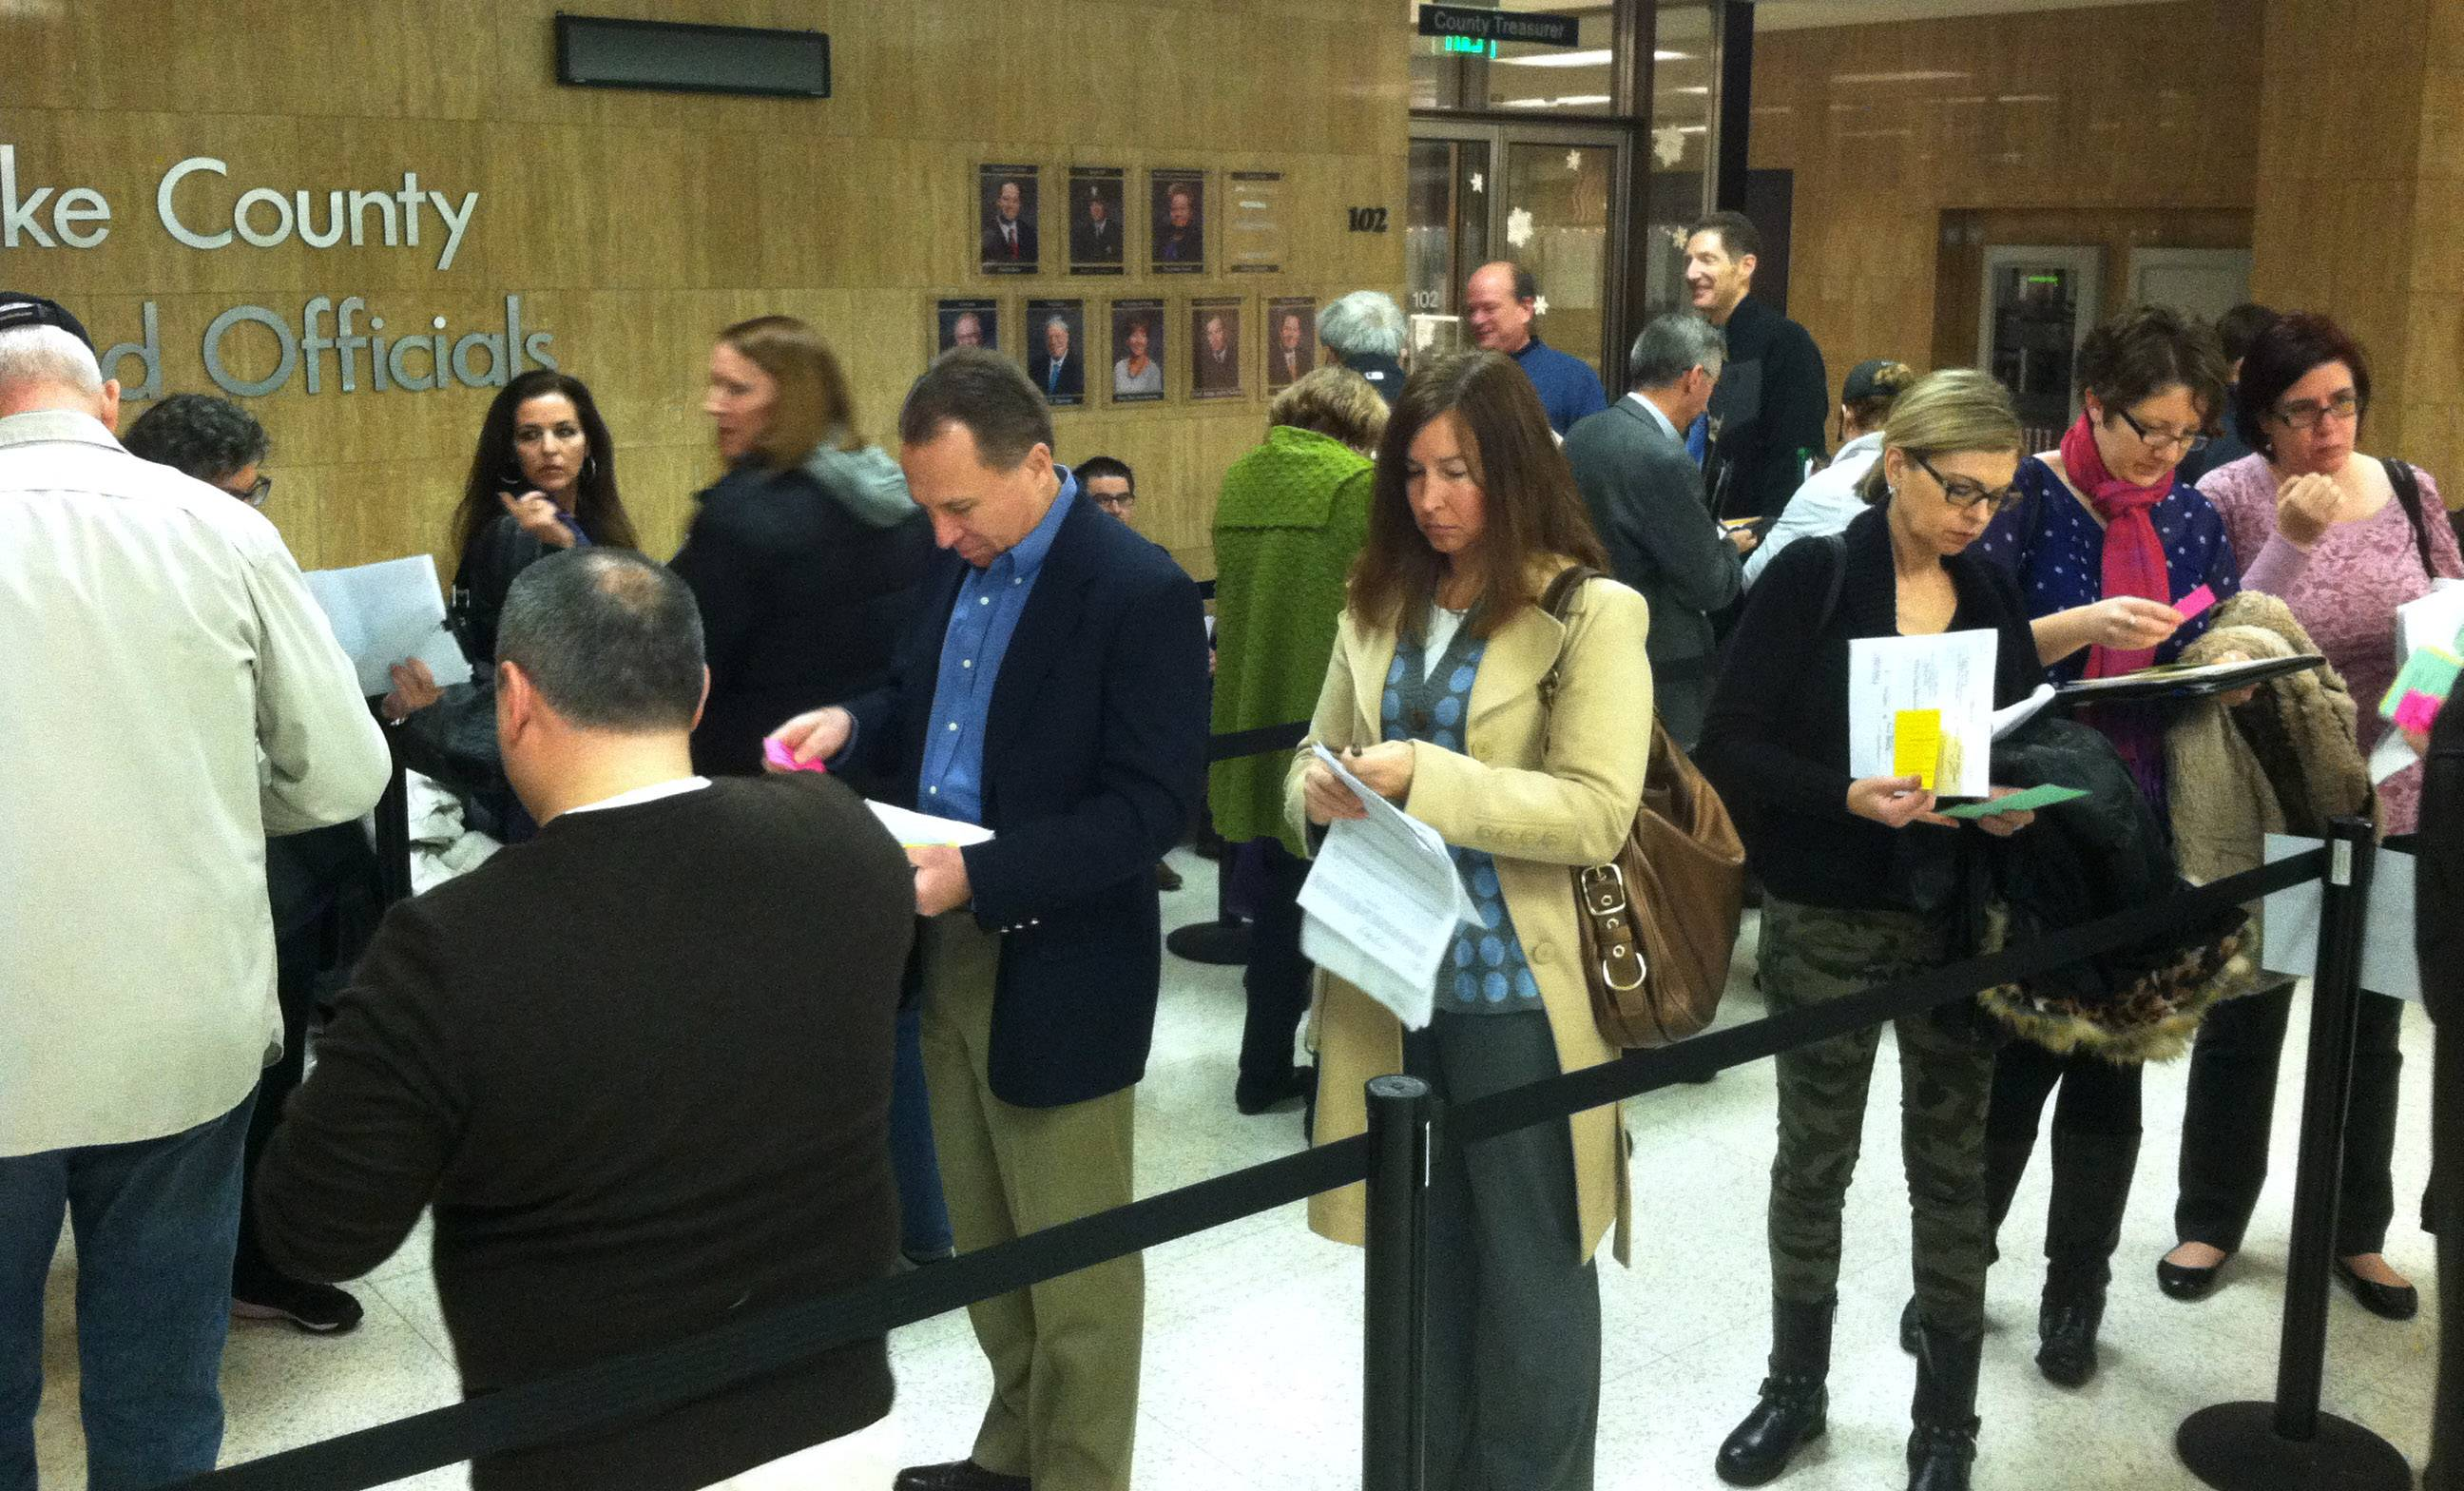 Lake County school board candidates line up in front of the Lake County clerk's office Monday morning to file election petitions required to get their names on the April 7 ballot.